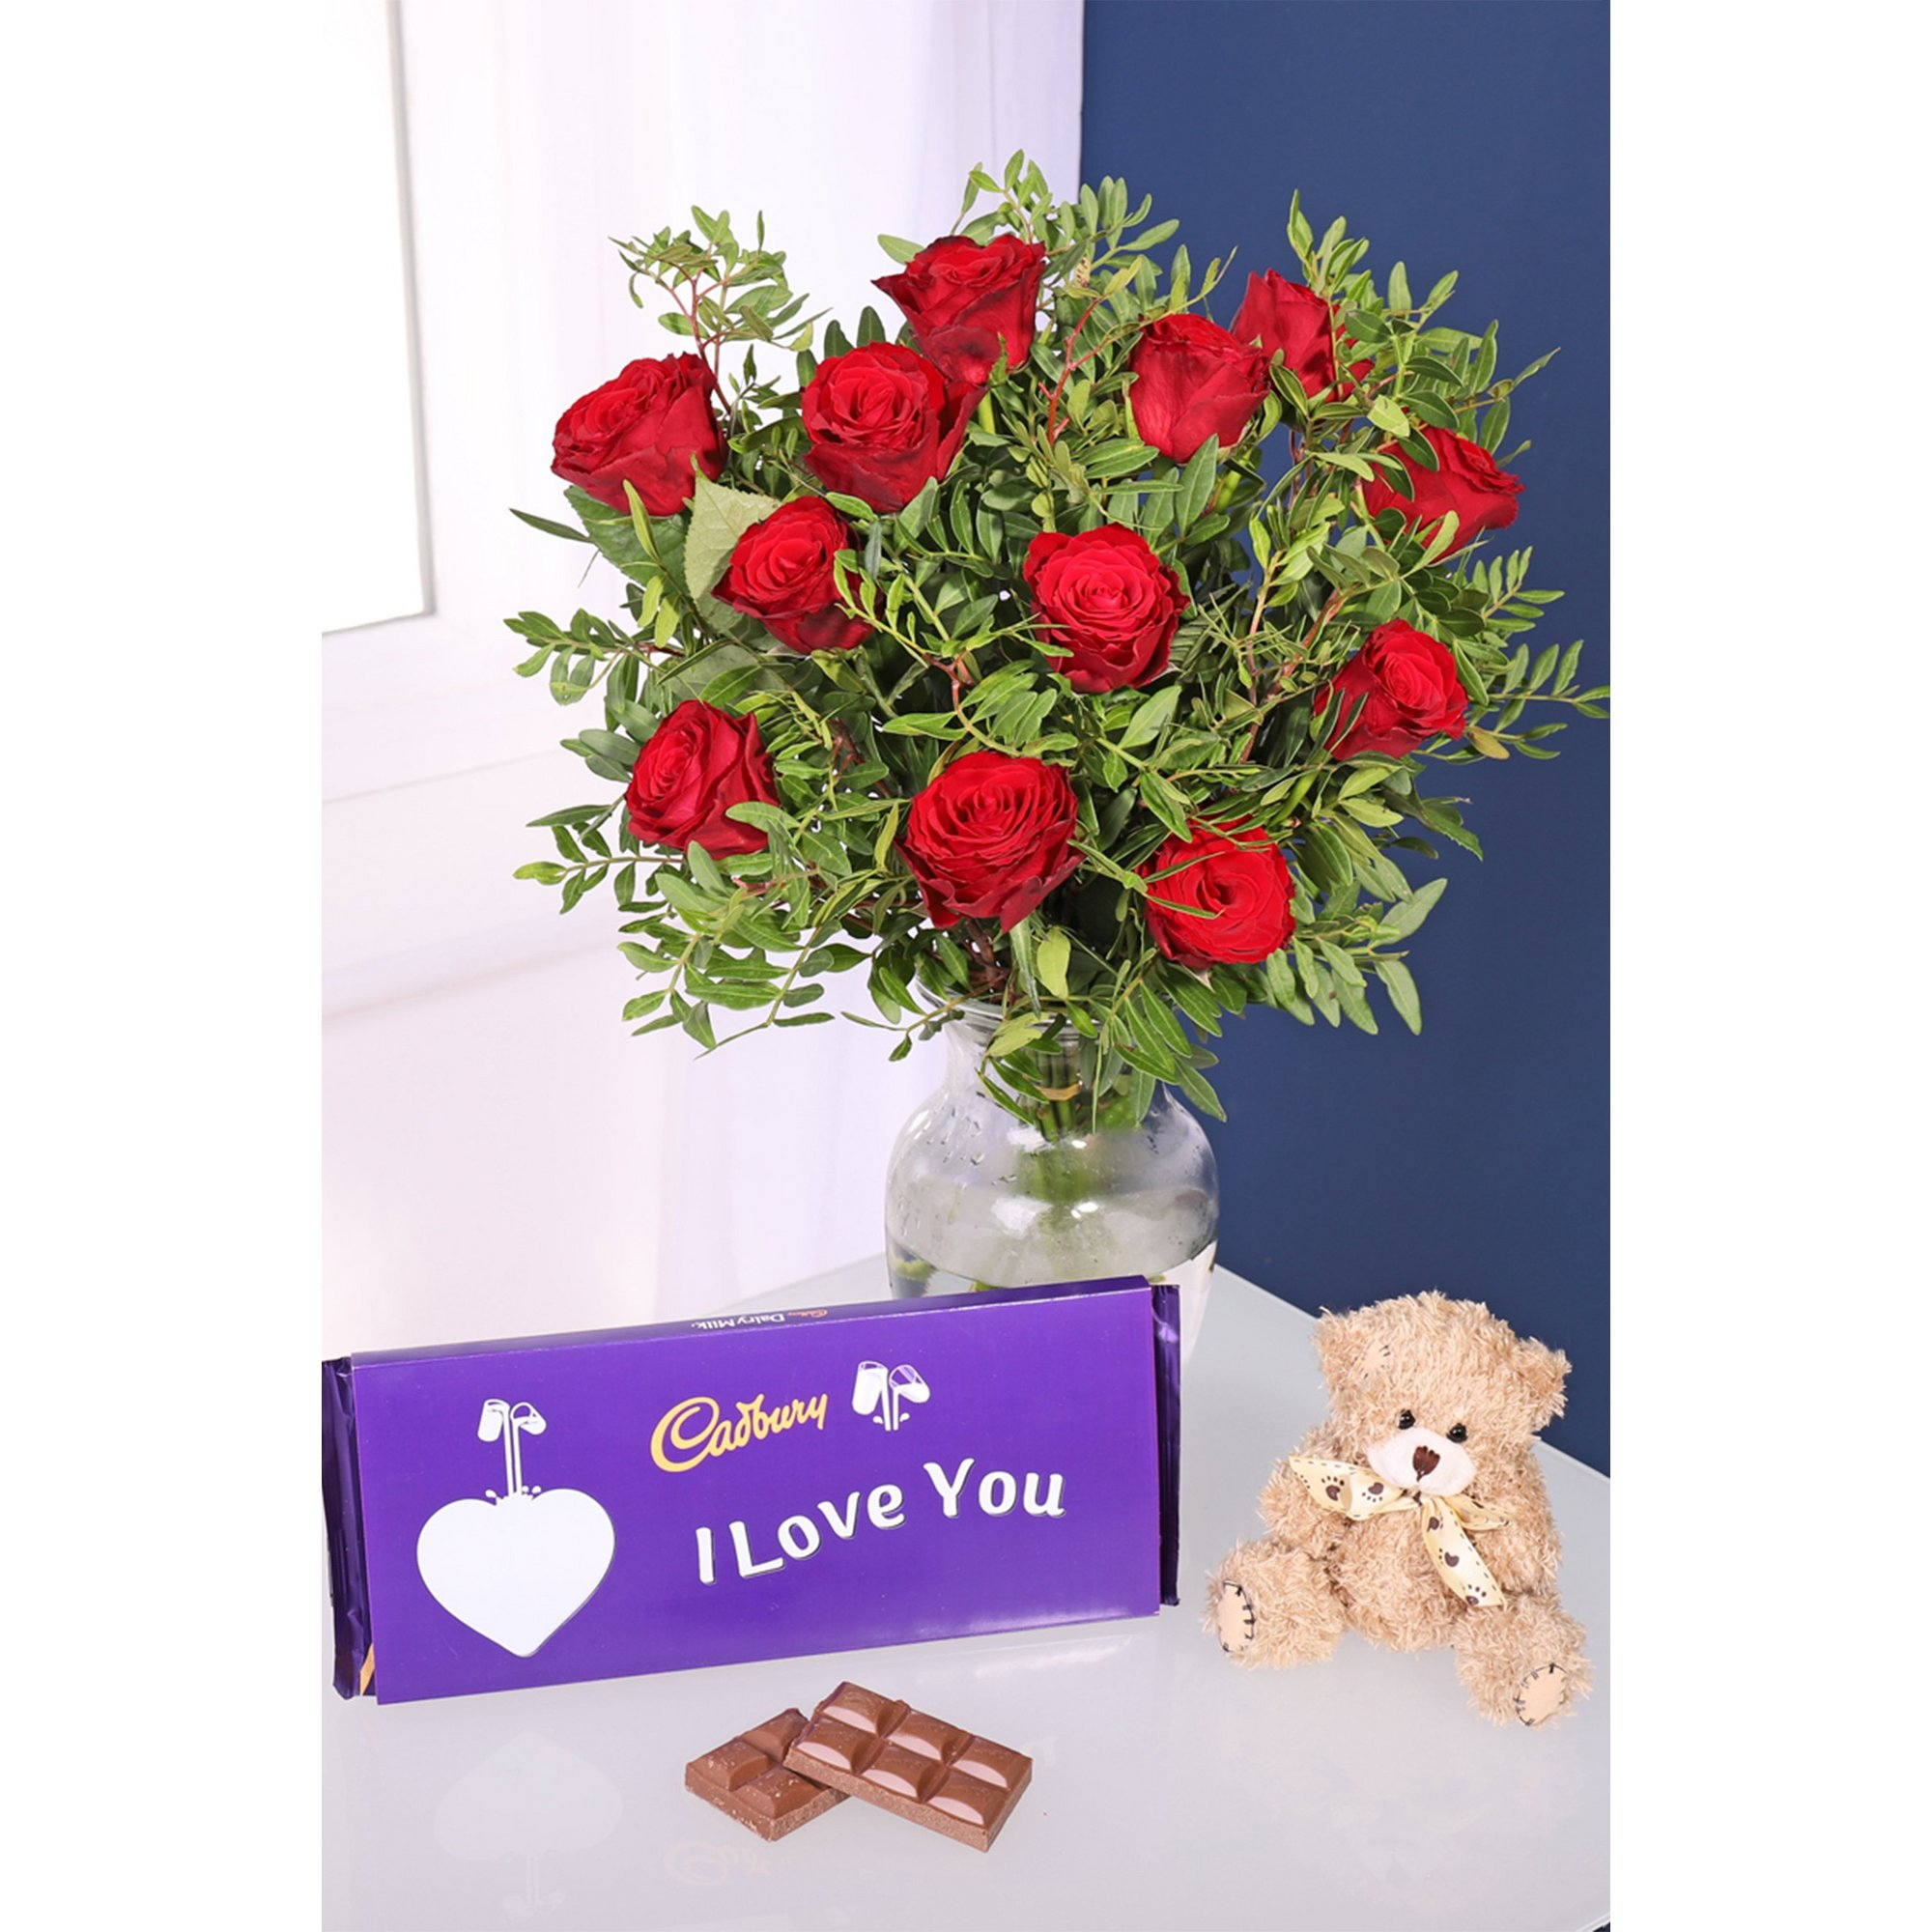 Image of Cadbury Red Roses Bouquet and Teddy Bear